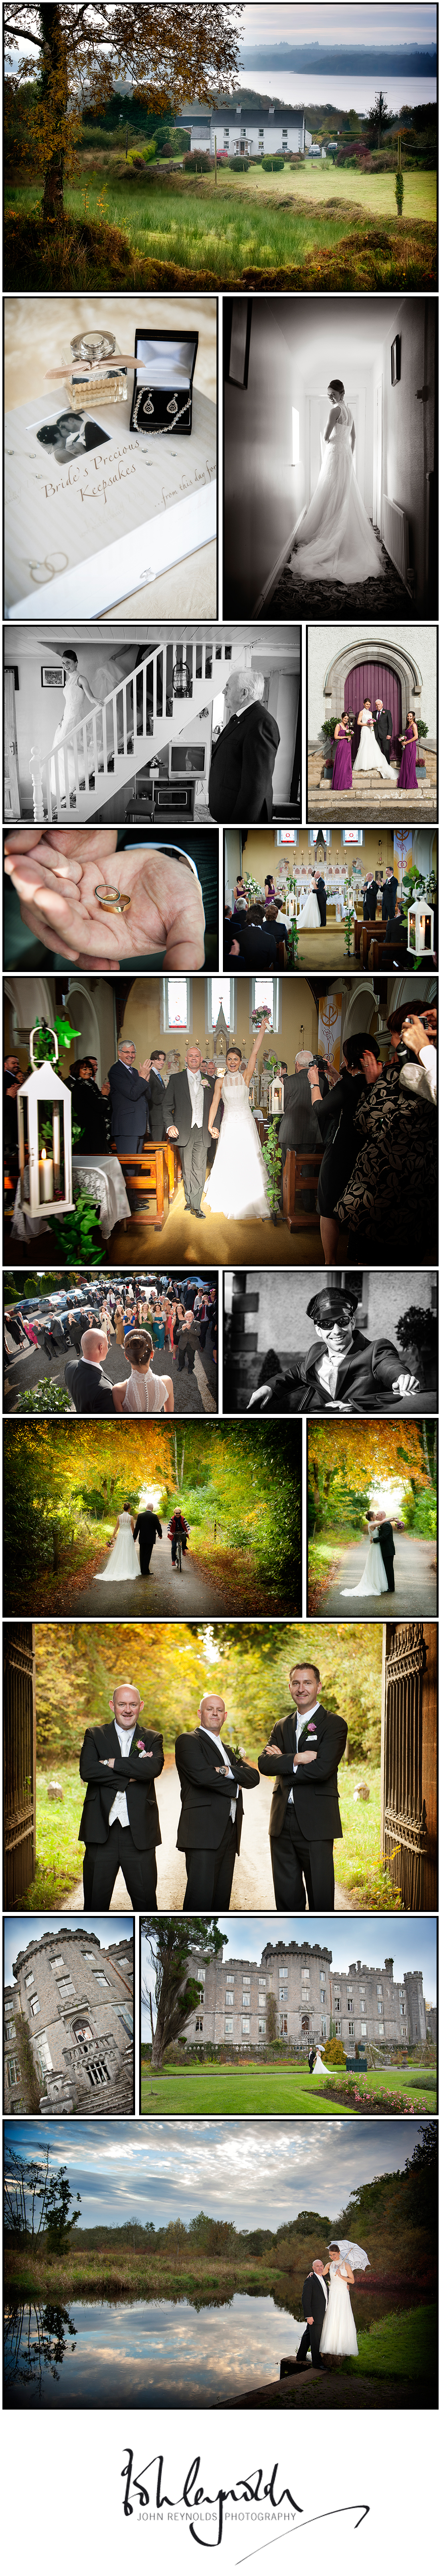 Blog Collage-Orla & Killian